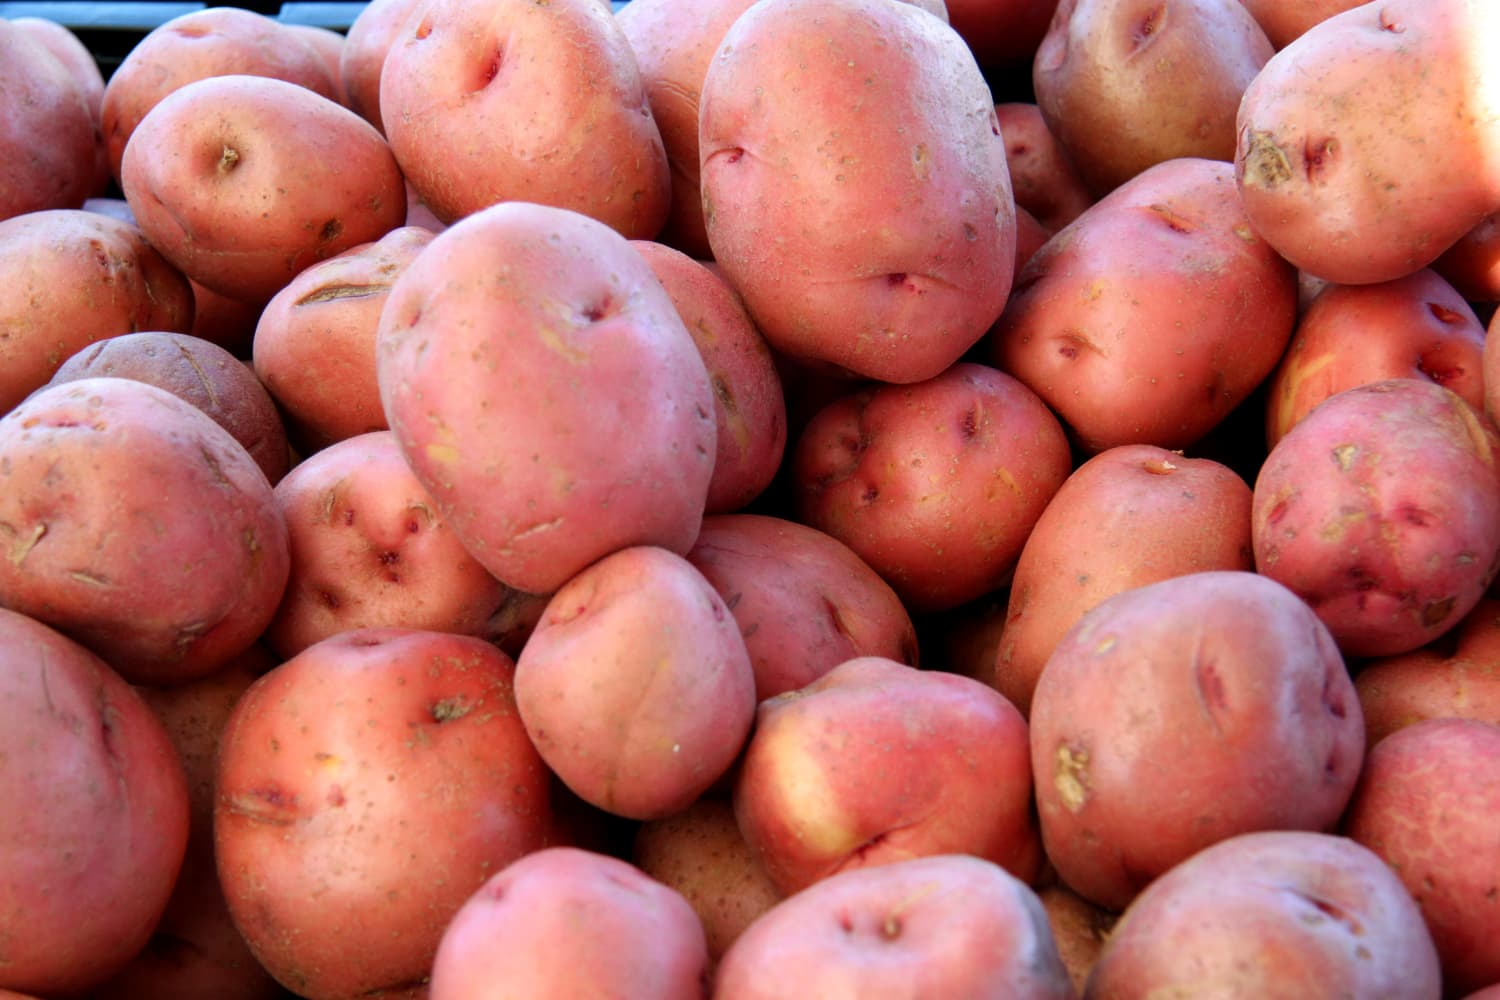 Potatoes, Lemons, Limes, and Oranges Recalled in Several States Over Potential Listeria Contamination